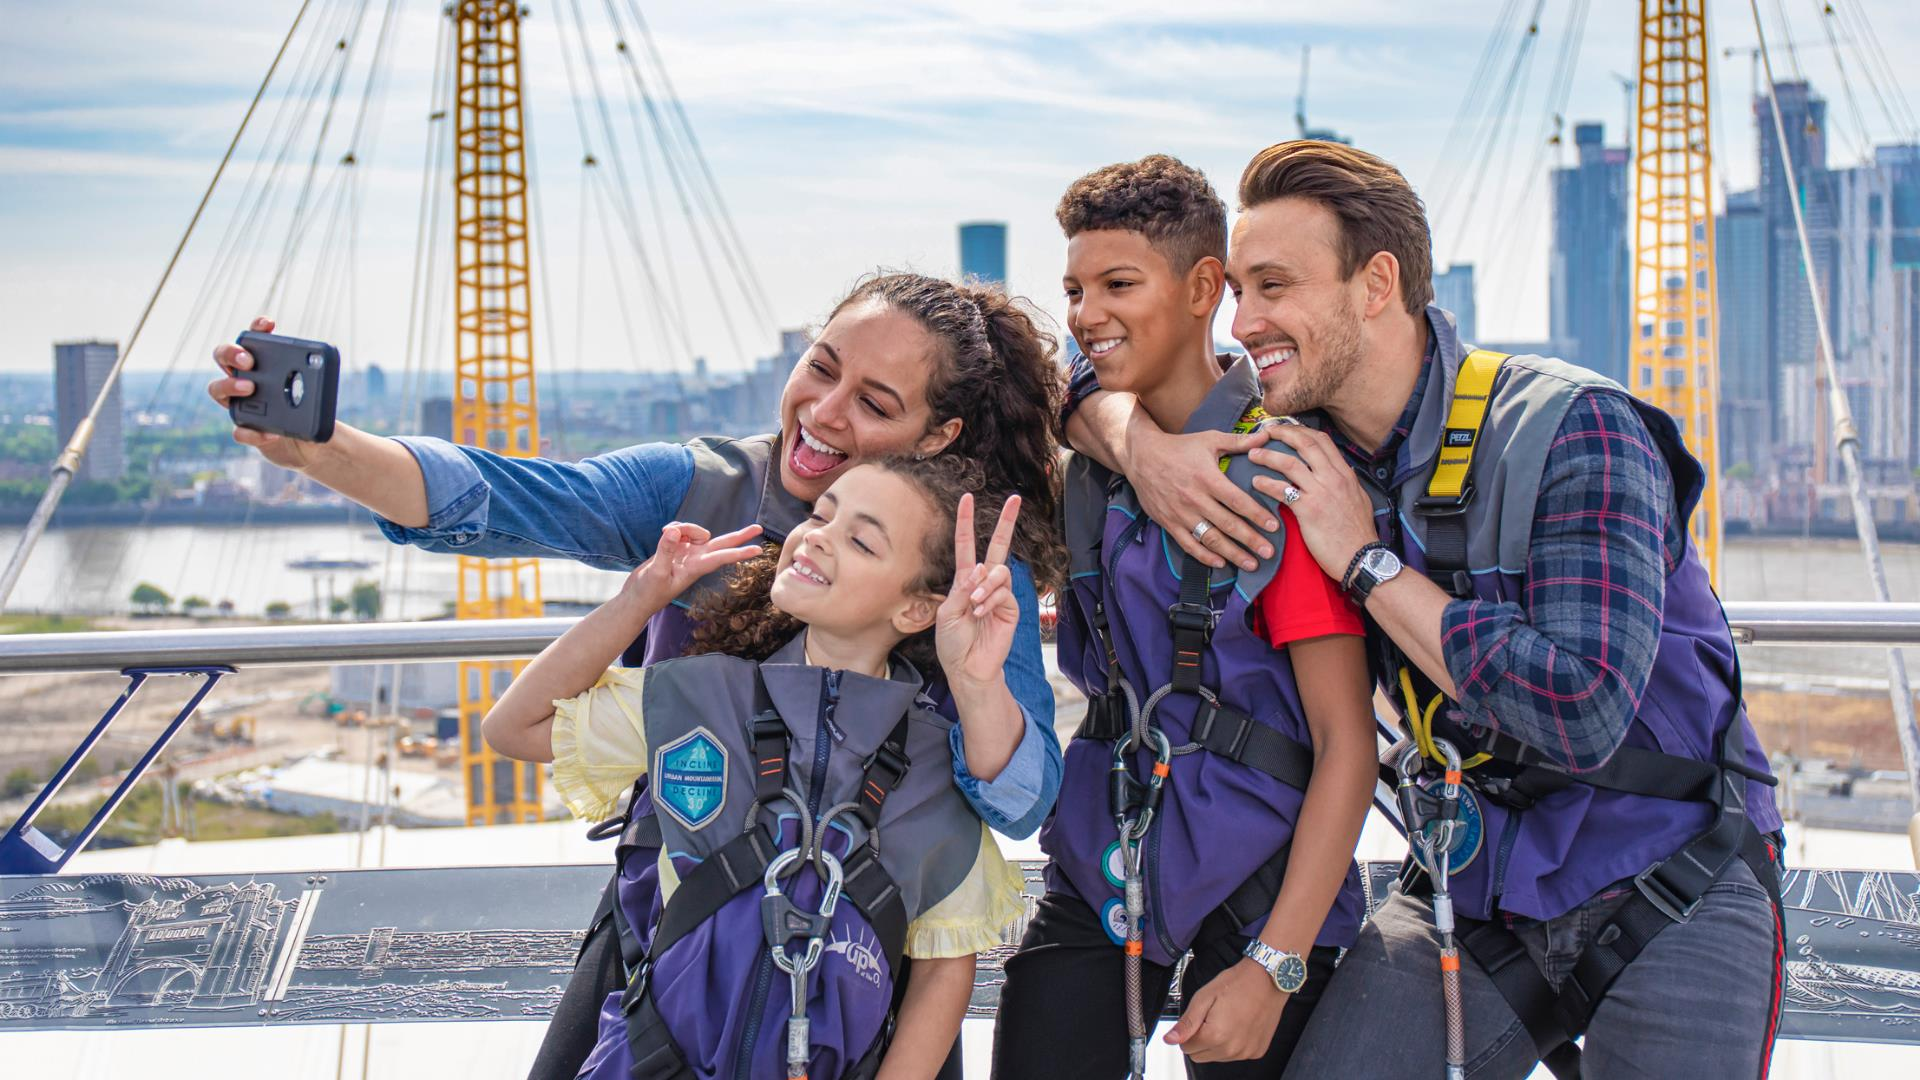 A family take a selfie at Up at The O2 as part of their Greenwich itinerary.